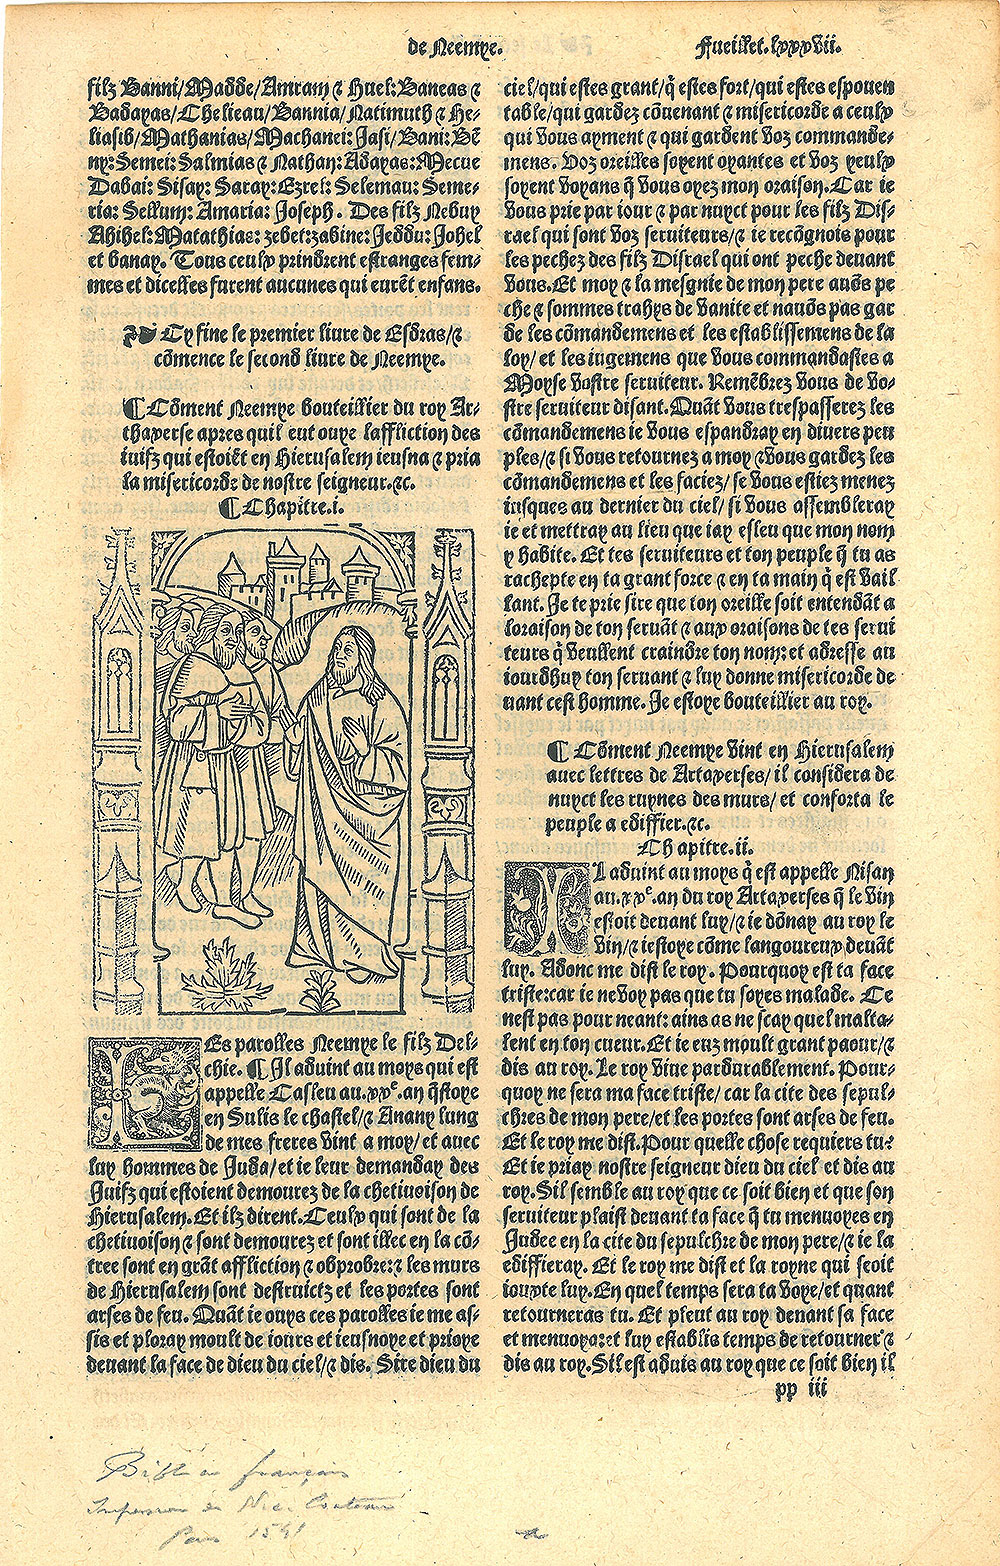 [Single leaf from a Bible in French]. <em>Le premier volume de la Bible en Francois.</em> Paris: Nicolas Couteau, 1541.